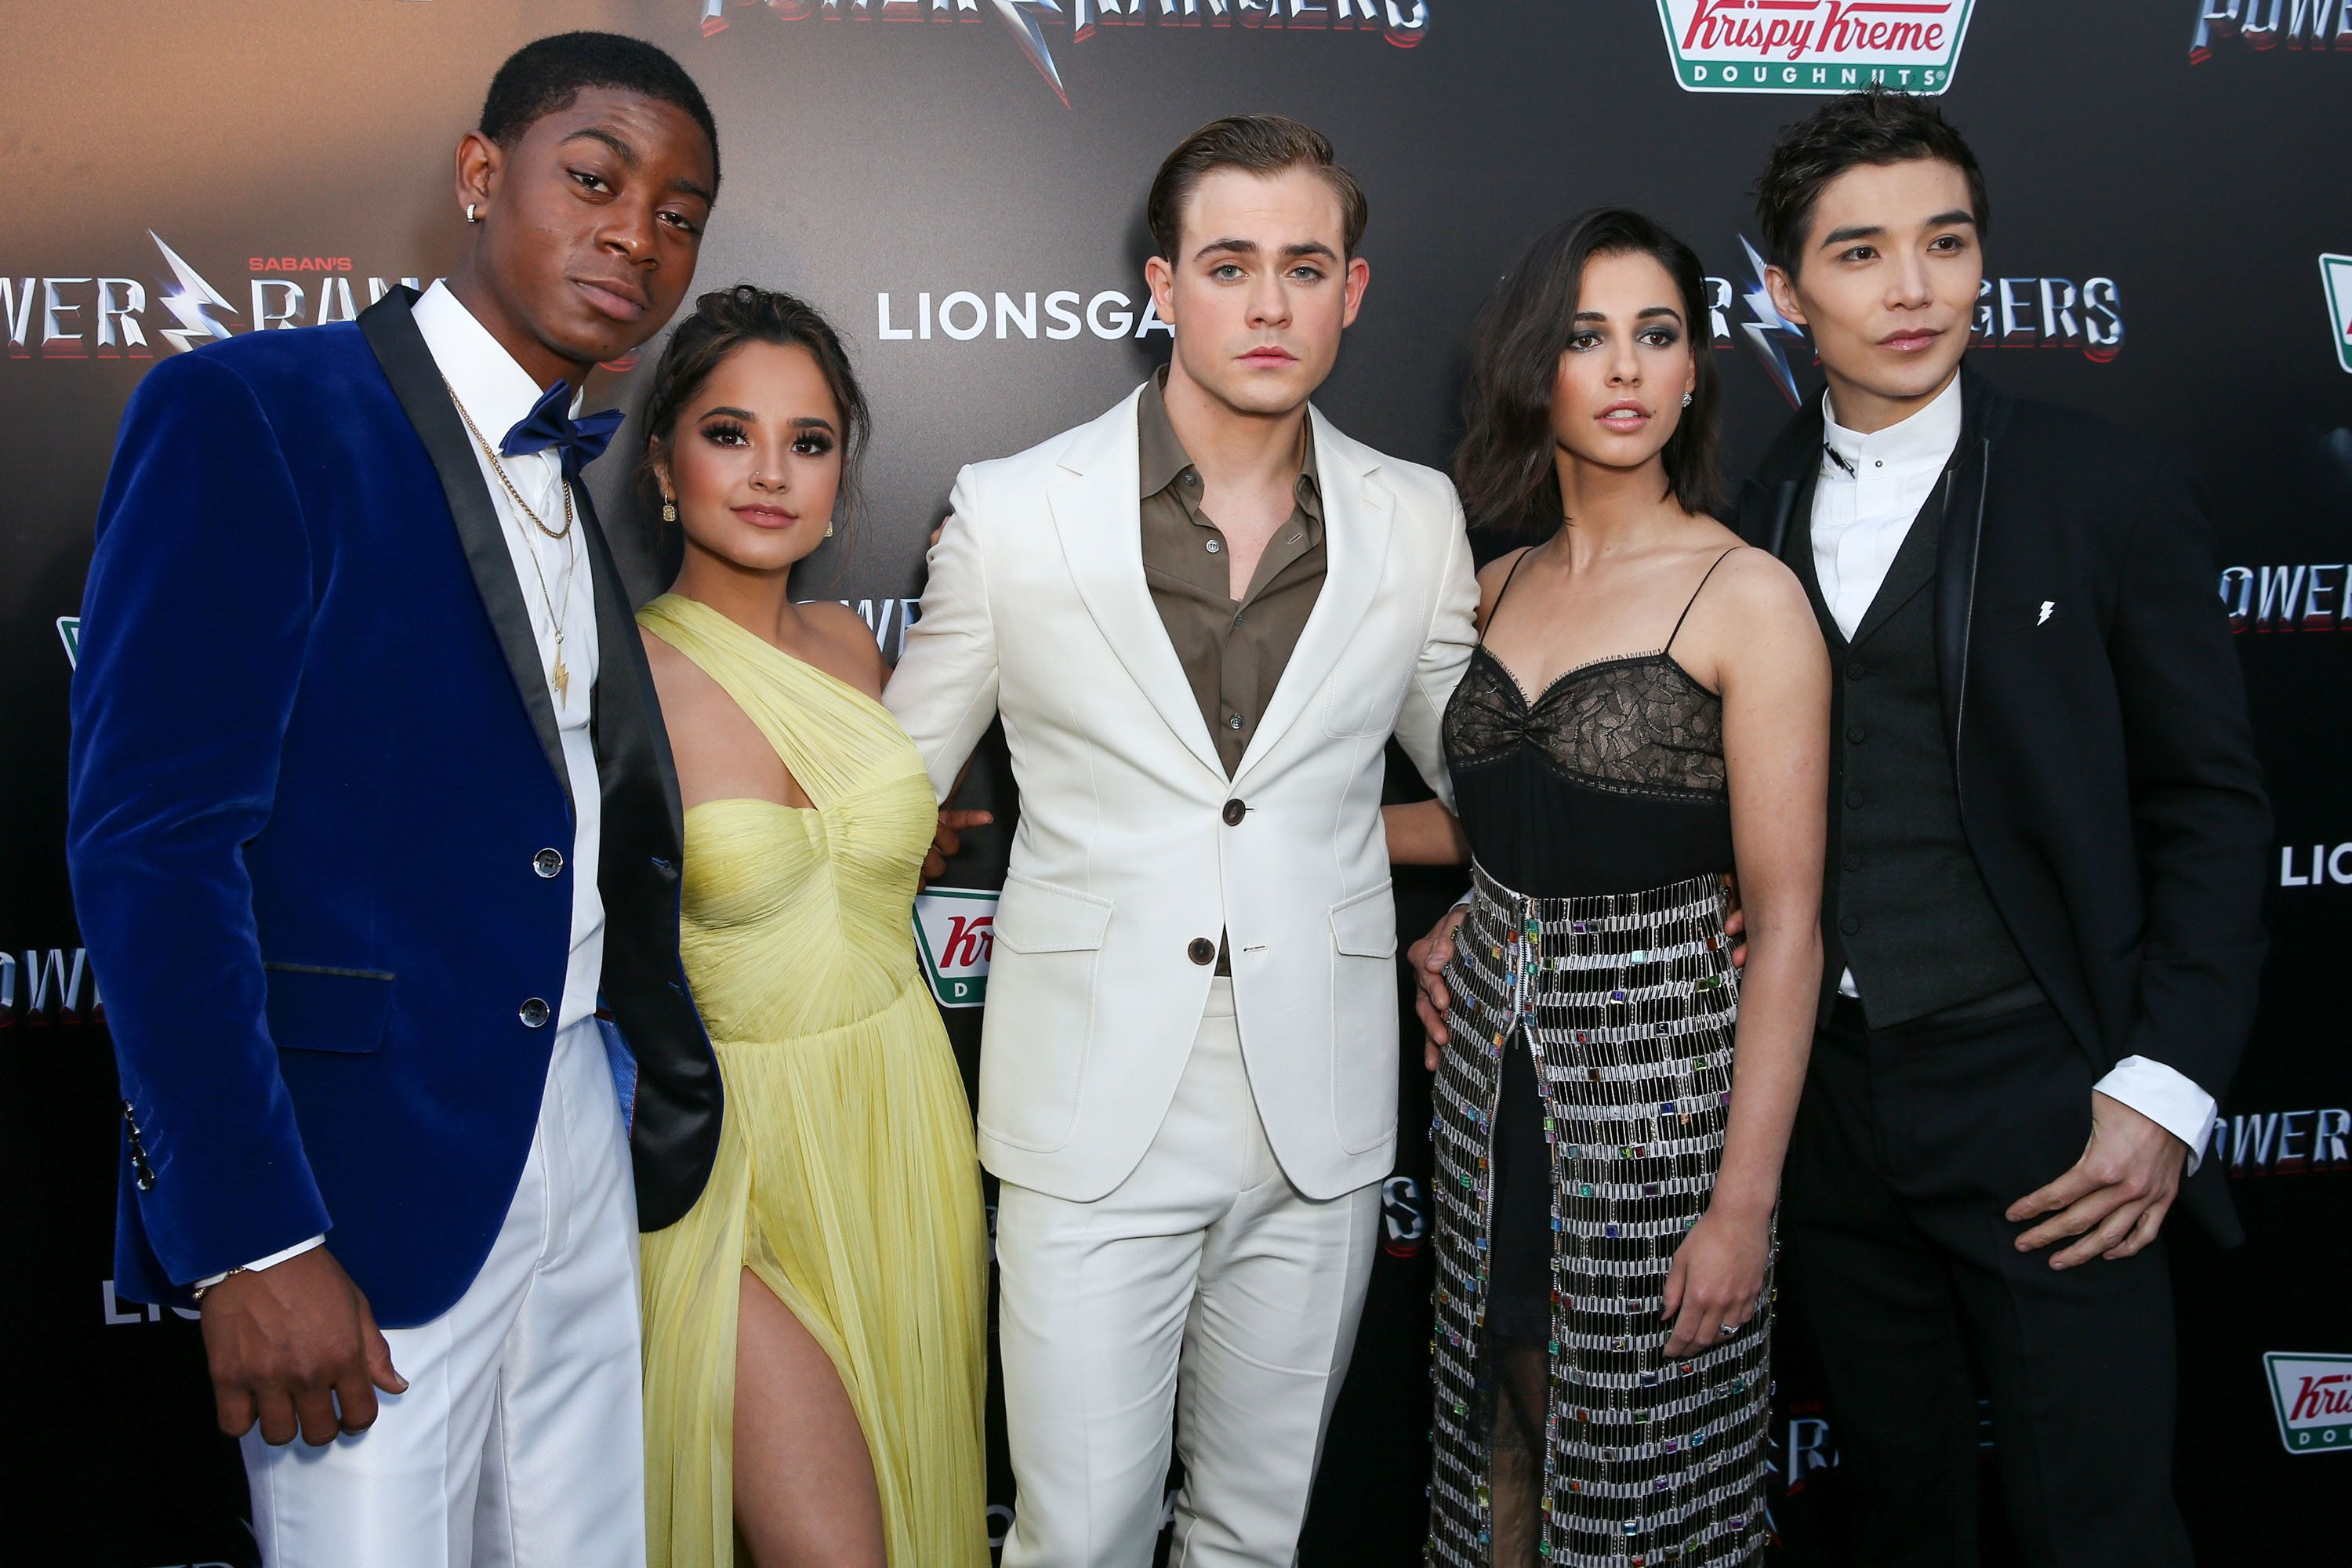 WESTWOOD, CA - MARCH 22: (L-R) RJ Cyler, Becky G, Dacre Montgomery, Naomi Scott and Ludi Lin arrive at the premiere of Lionsgate's 'Power Rangers' at the Westwood Village Theatre on March 22, 2017 in Westwood, California.  (Photo by Rich Fury/Getty Images)